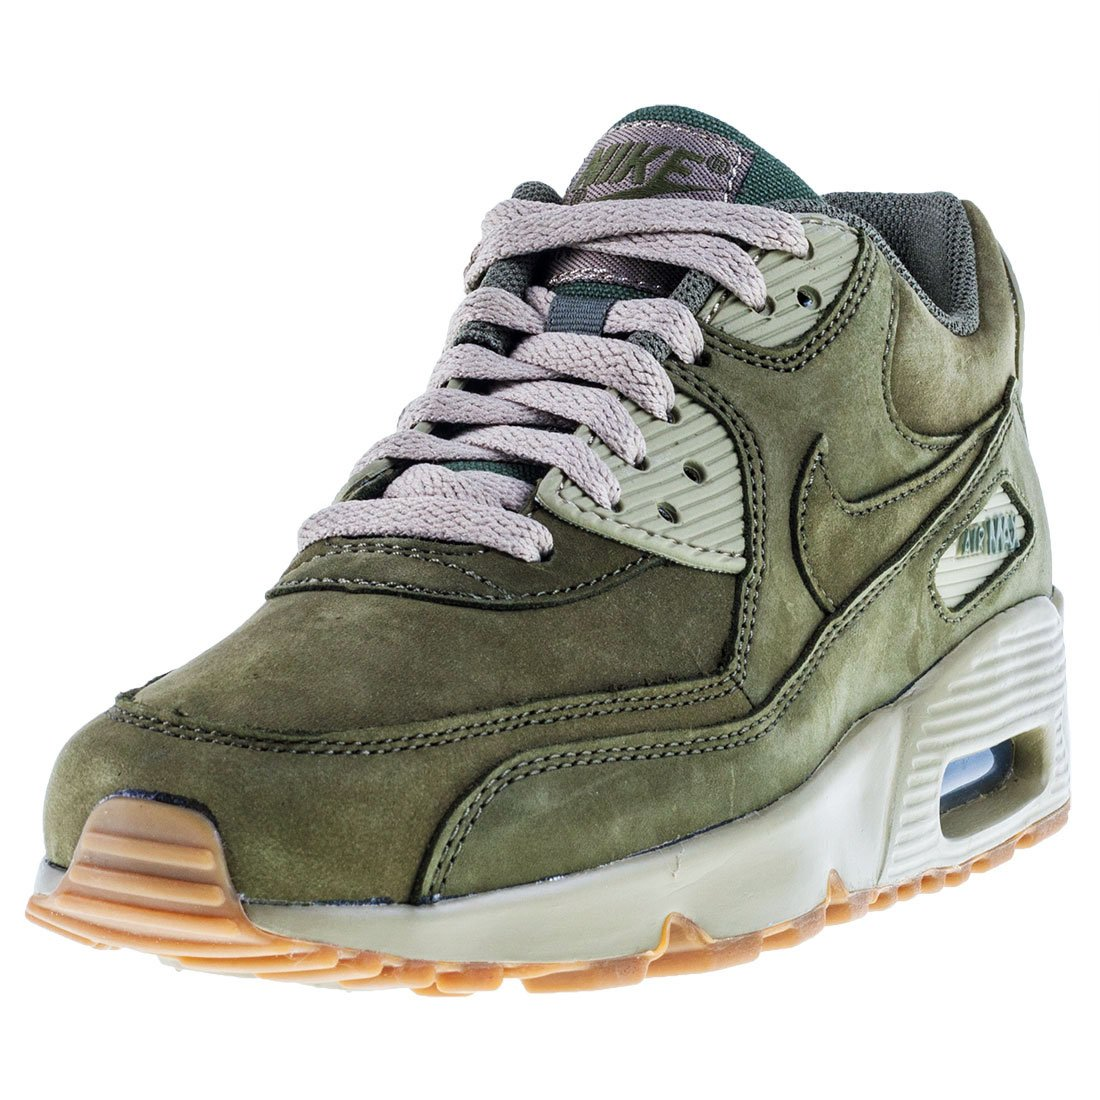 Nike Air Max 90 Winter PRM 943747200 Turnschuhe